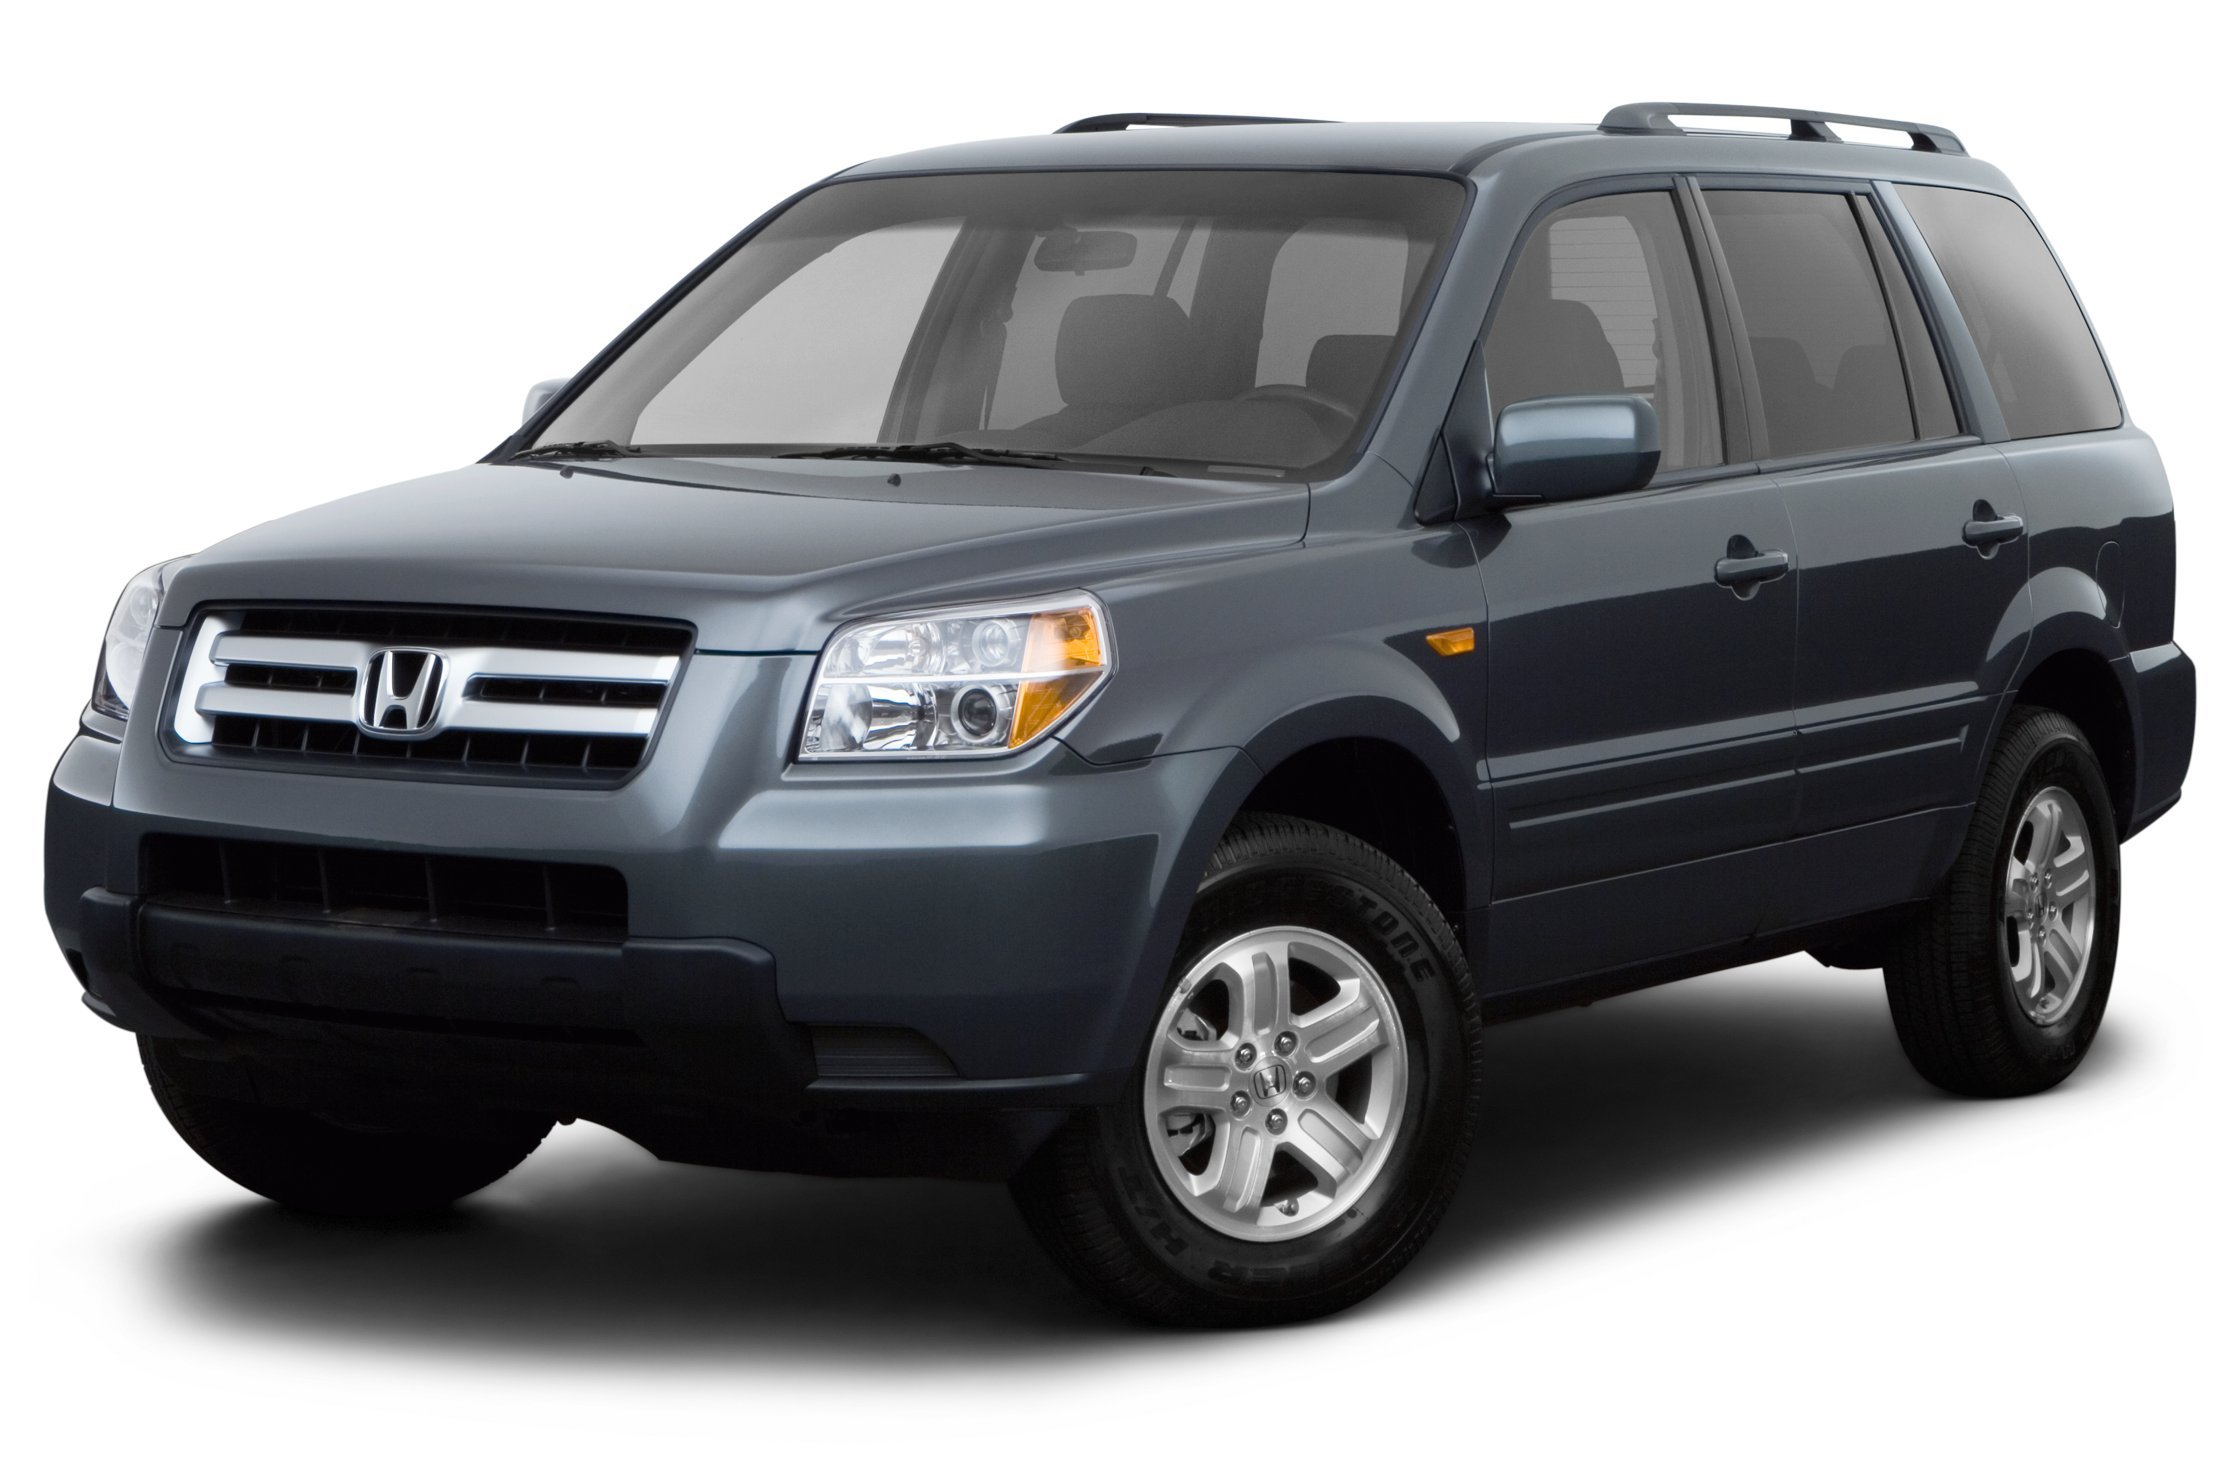 amazon com 2008 honda pilot ex reviews images and specs vehicles 4 5 out of 5 stars53 customer ratings 3 answered questions